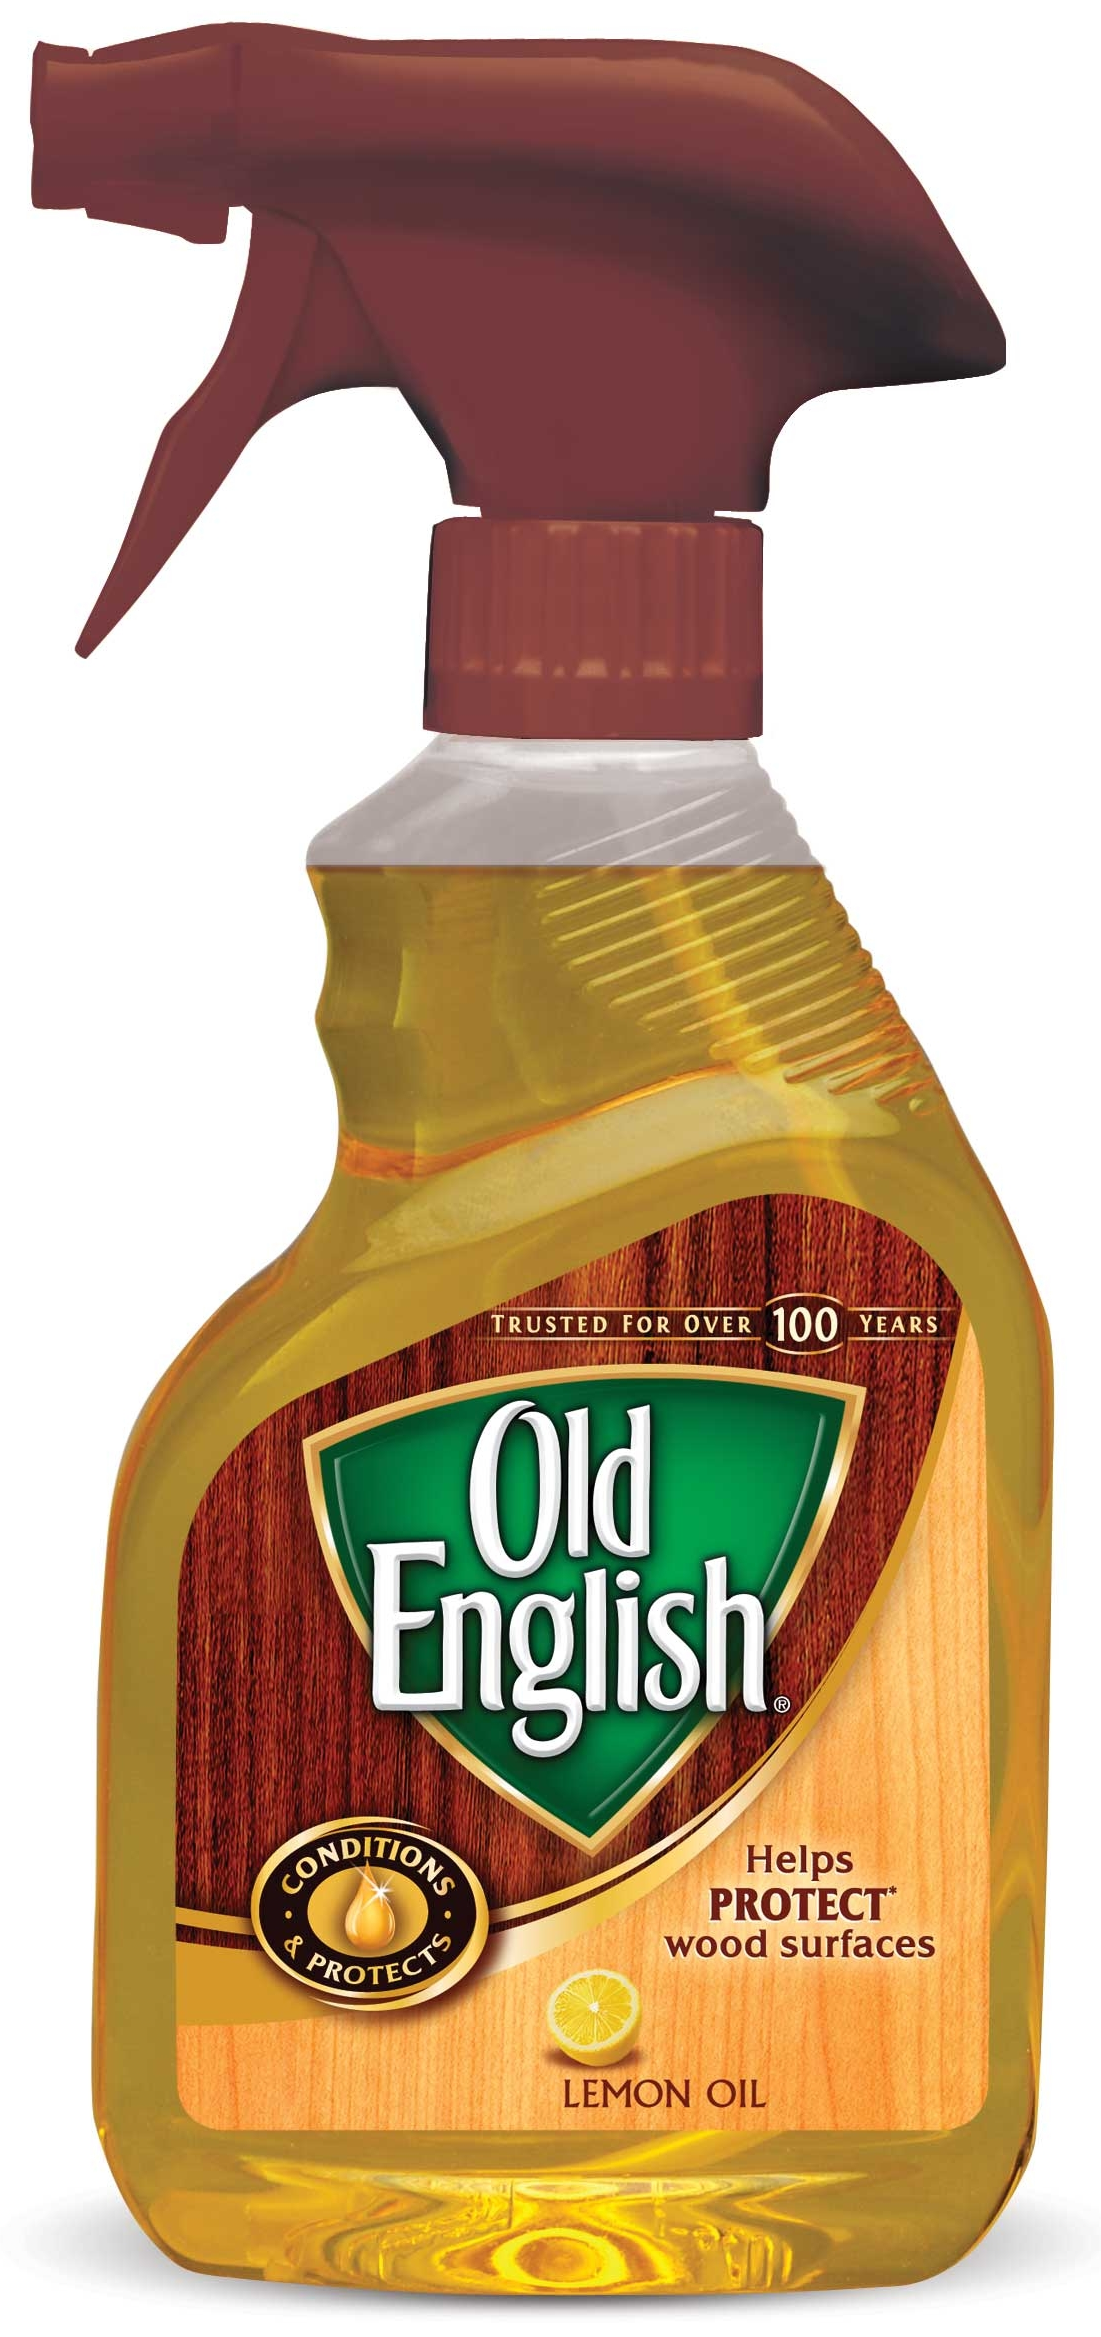 Superbe Old English Lemon Oil Furniture Polish, 12oz Bottle